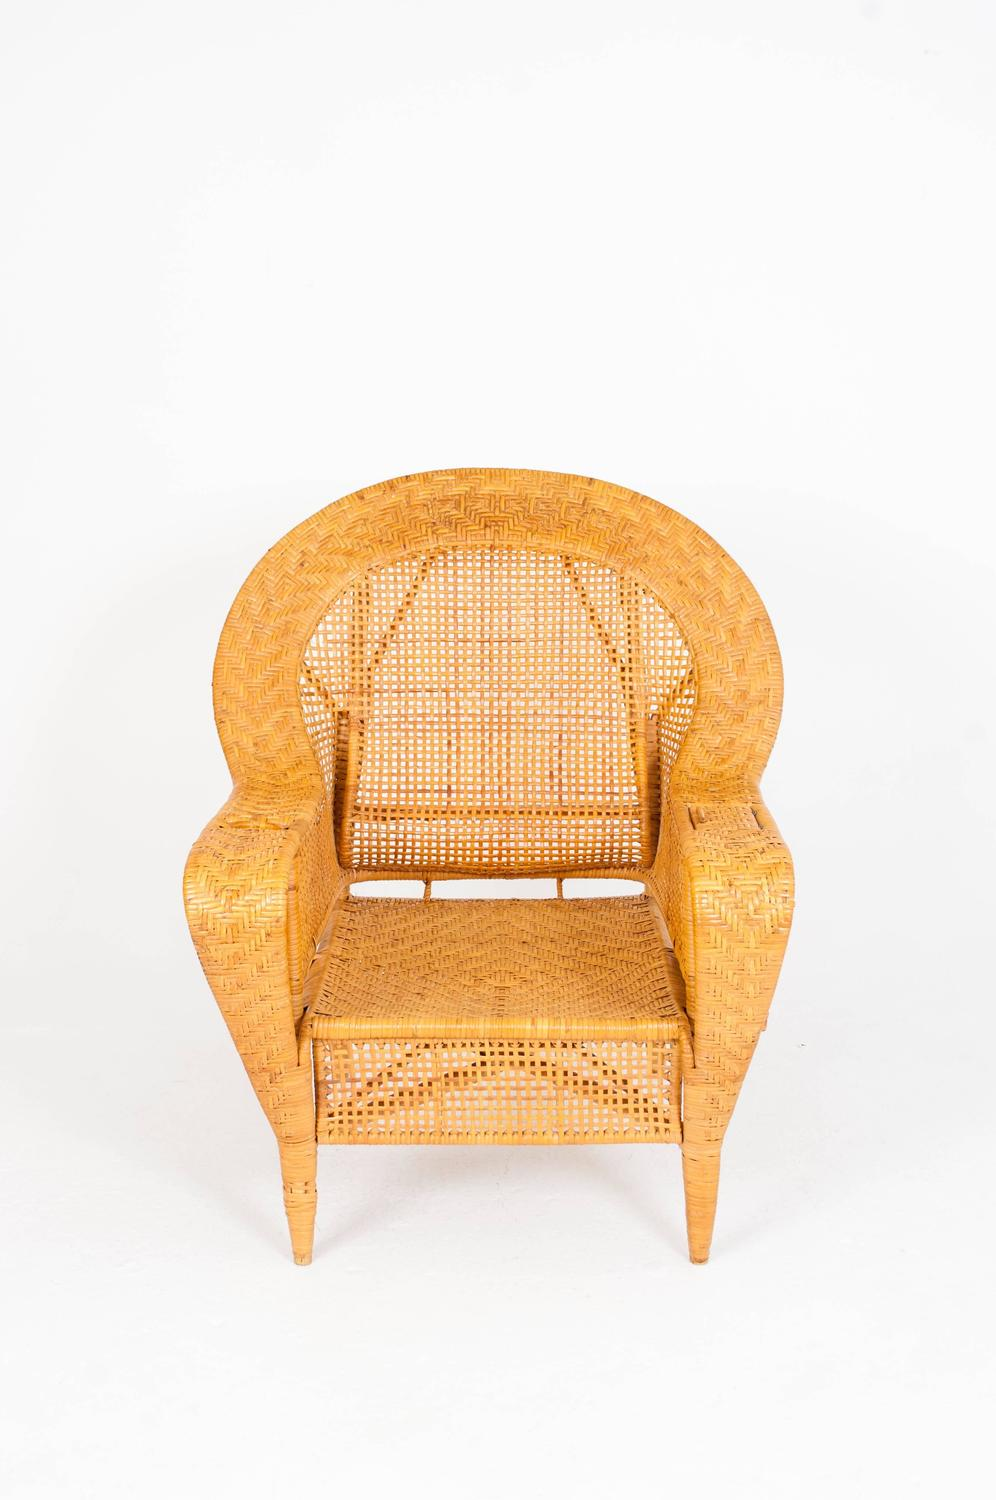 Kay Fisker Wicker Chair For Sale at 1stdibs